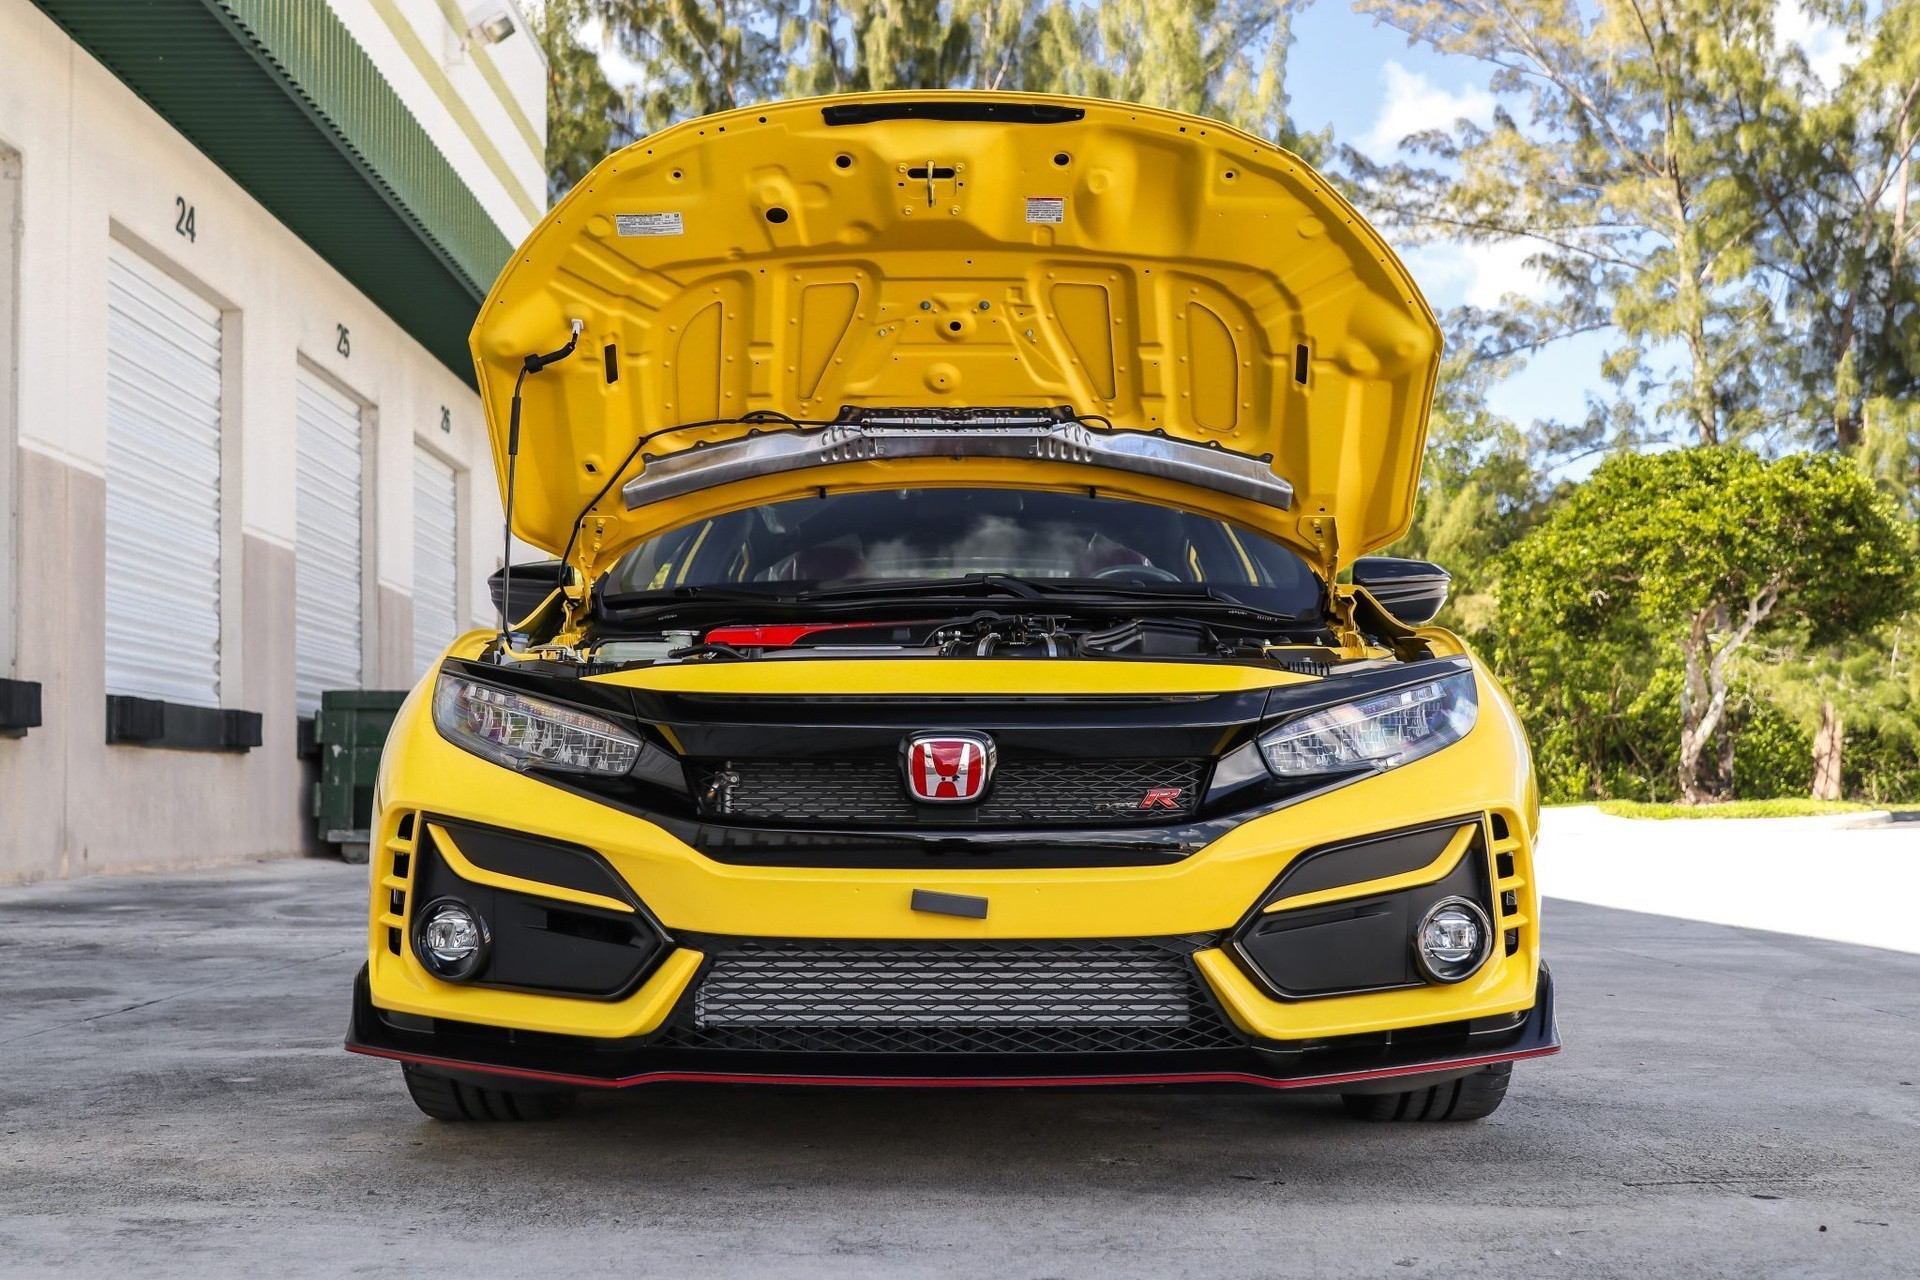 2021_Honda_Civic_Type_R_Limited_Edition-0008